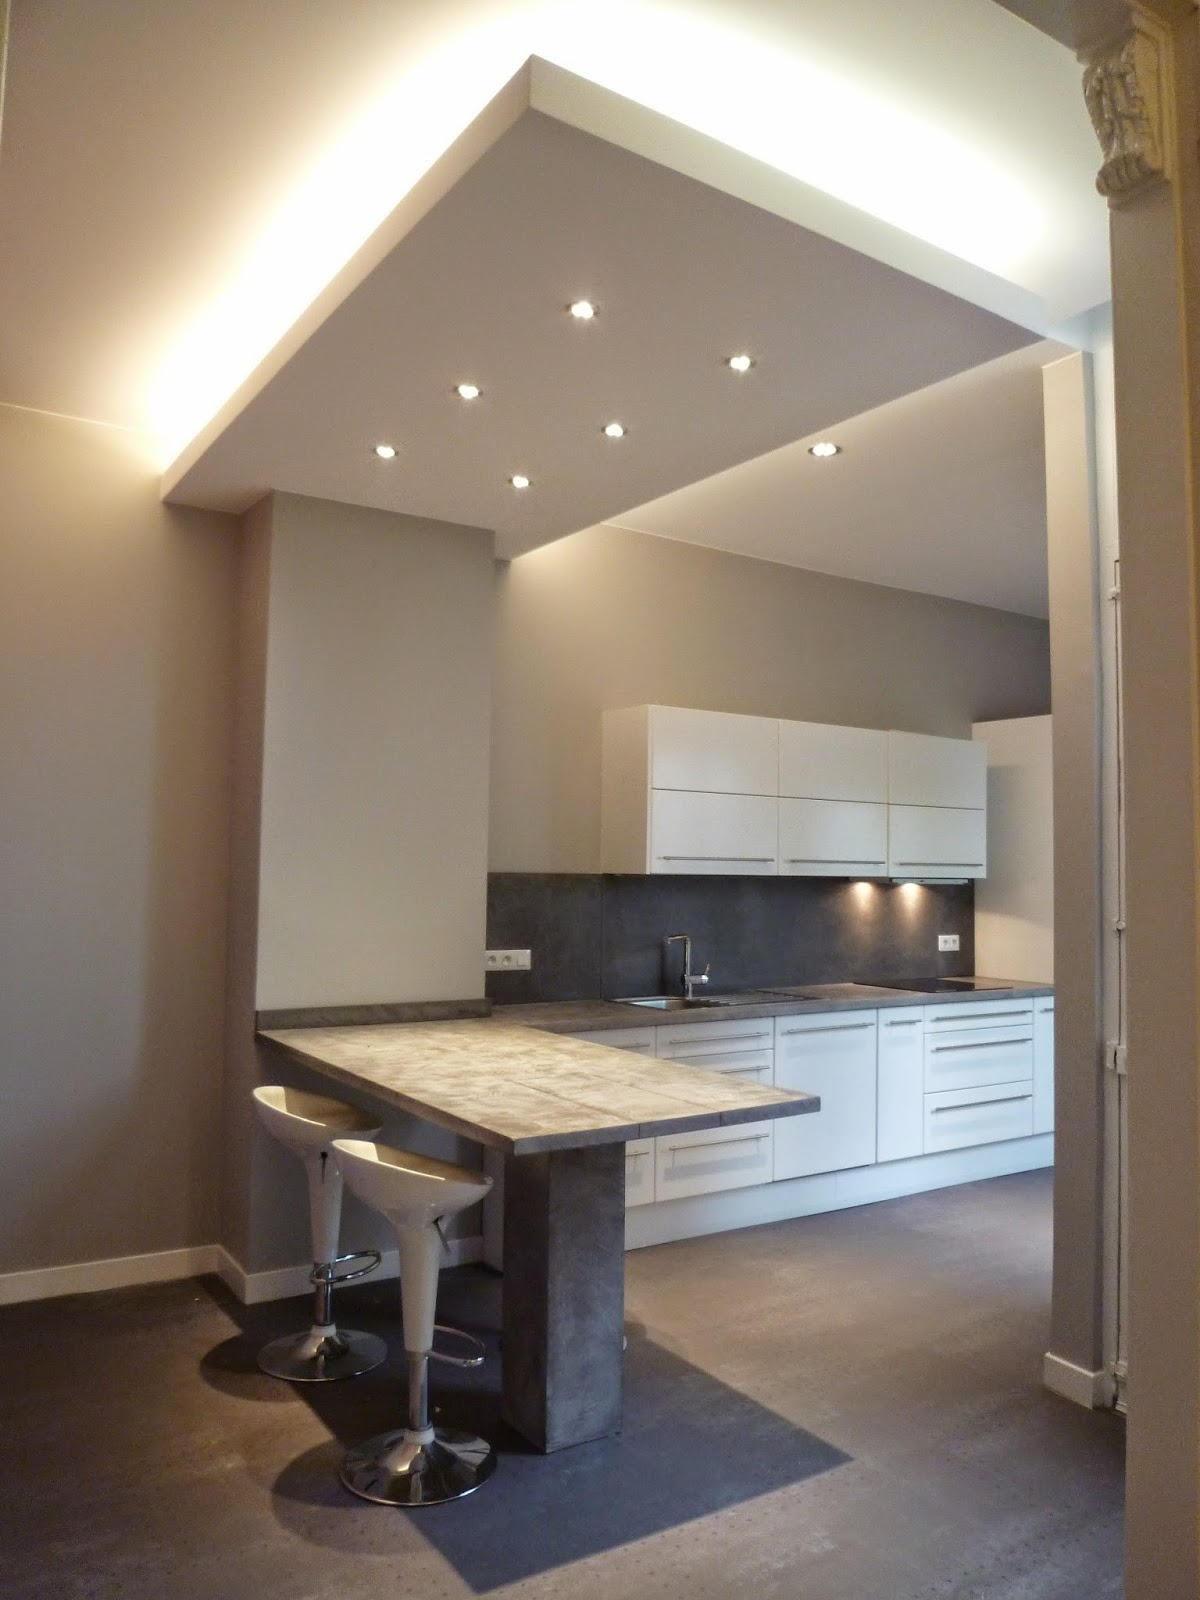 Jacques lenain architecte lille renovation d 39 une maison a for Eclairage faux plafond cuisine